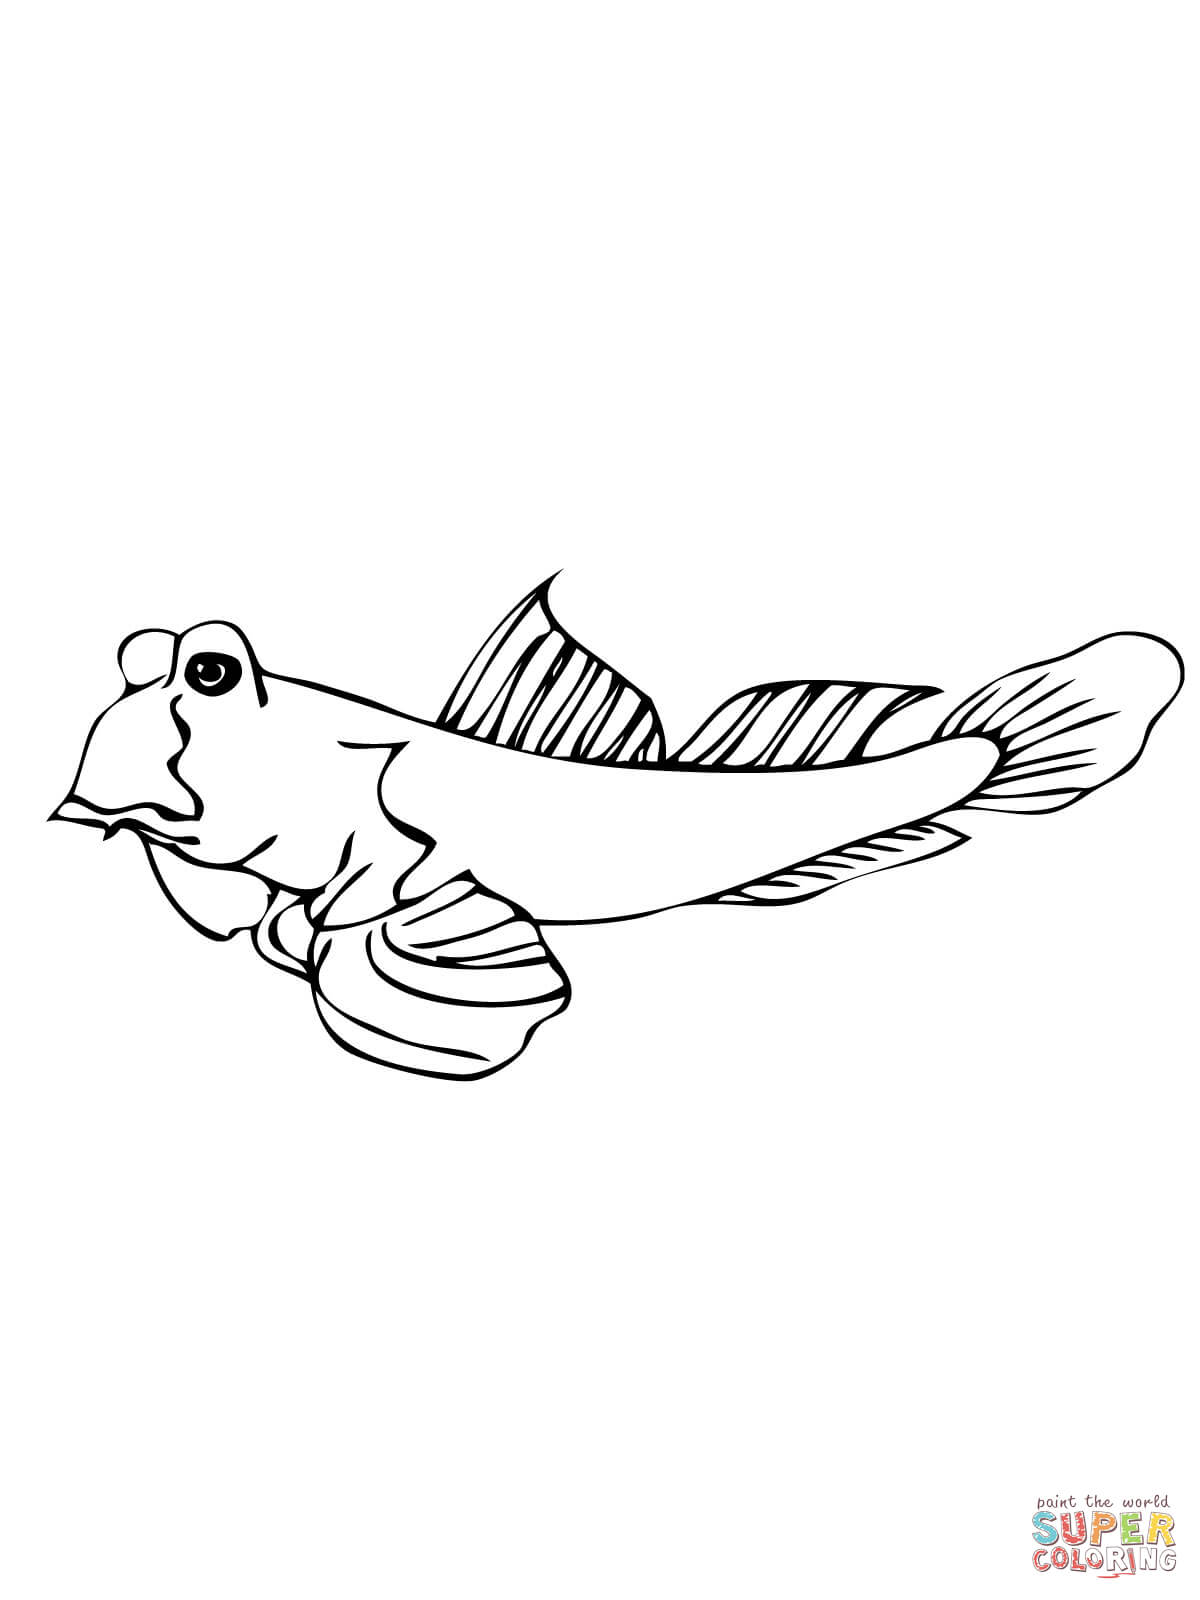 Mudskipper Fish Coloring Page Free Printable Coloring Pages